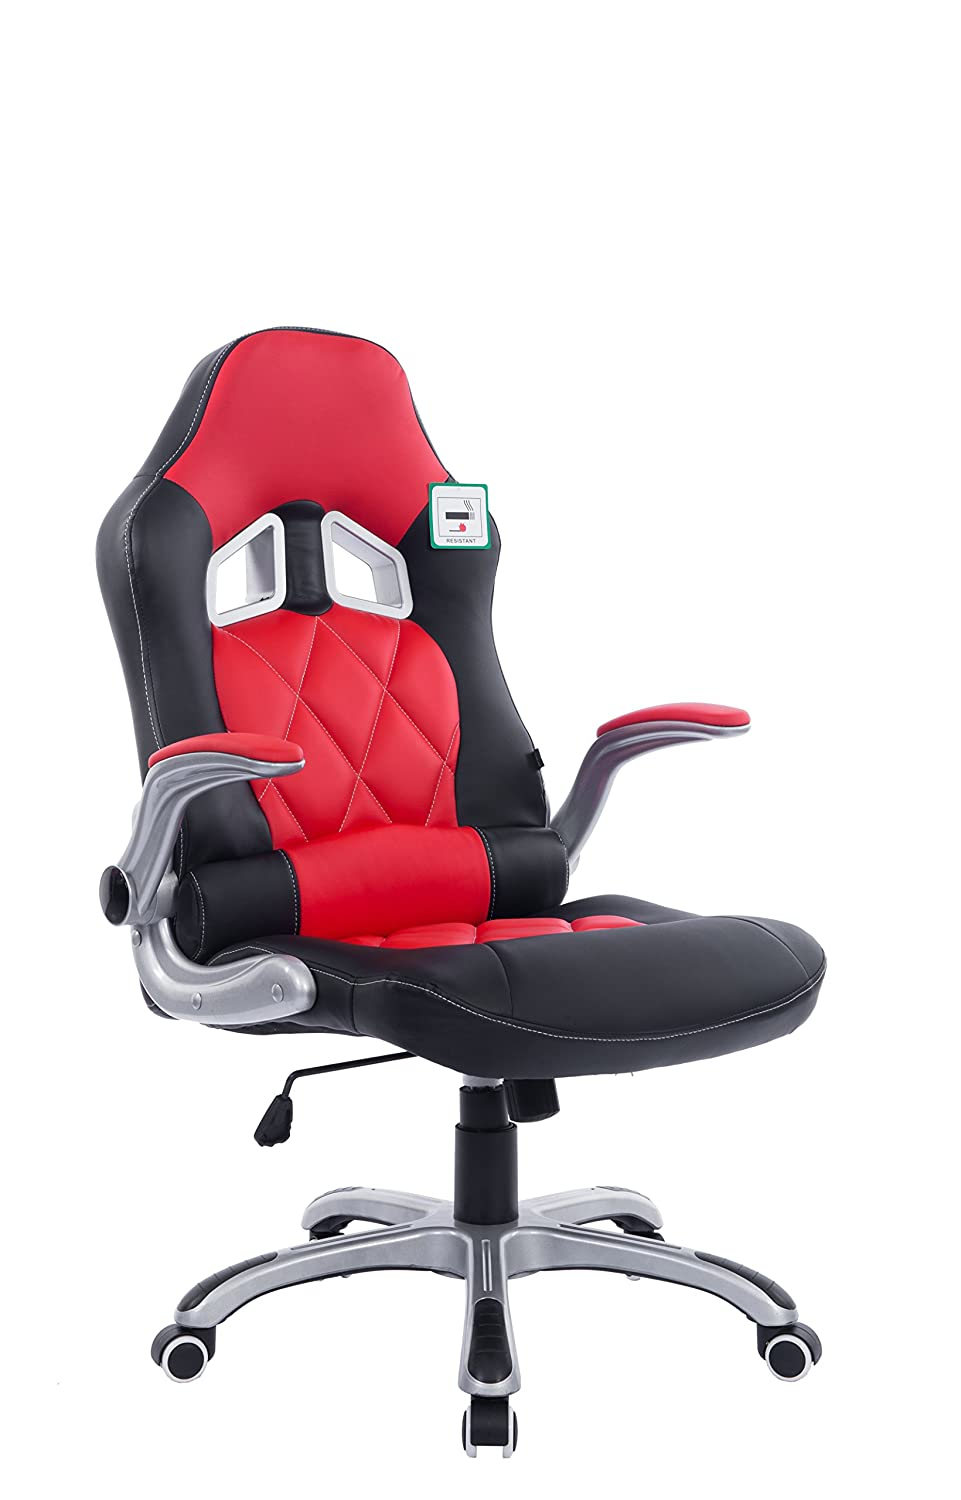 race seat office chair sports car seat office chair office chair furniture high back race car. Black Bedroom Furniture Sets. Home Design Ideas